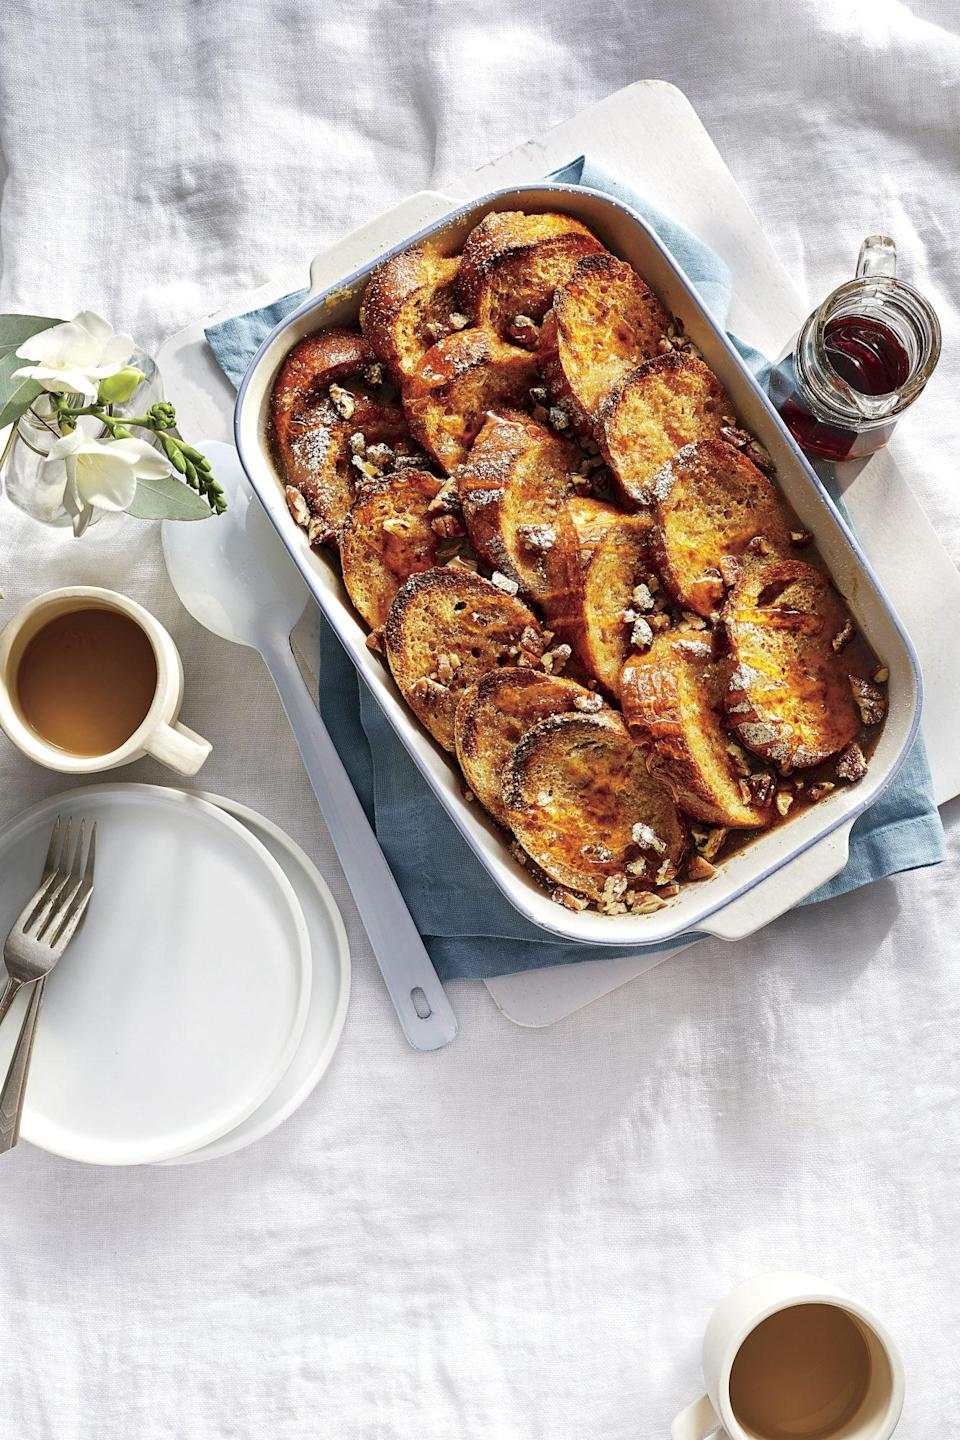 """<p><strong>Recipe: <a href=""""https://www.southernliving.com/recipes/overnight-french-toast-casserole"""" rel=""""nofollow noopener"""" target=""""_blank"""" data-ylk=""""slk:Overnight French Toast Casserole with Bourbon-Maple Syrup"""" class=""""link rapid-noclick-resp"""">Overnight French Toast Casserole with Bourbon-Maple Syrup</a></strong></p> <p>Assemble this decadent casserole the night before and let it sit at room temperature for 10 minutes before popping it in the oven. <br></p>"""